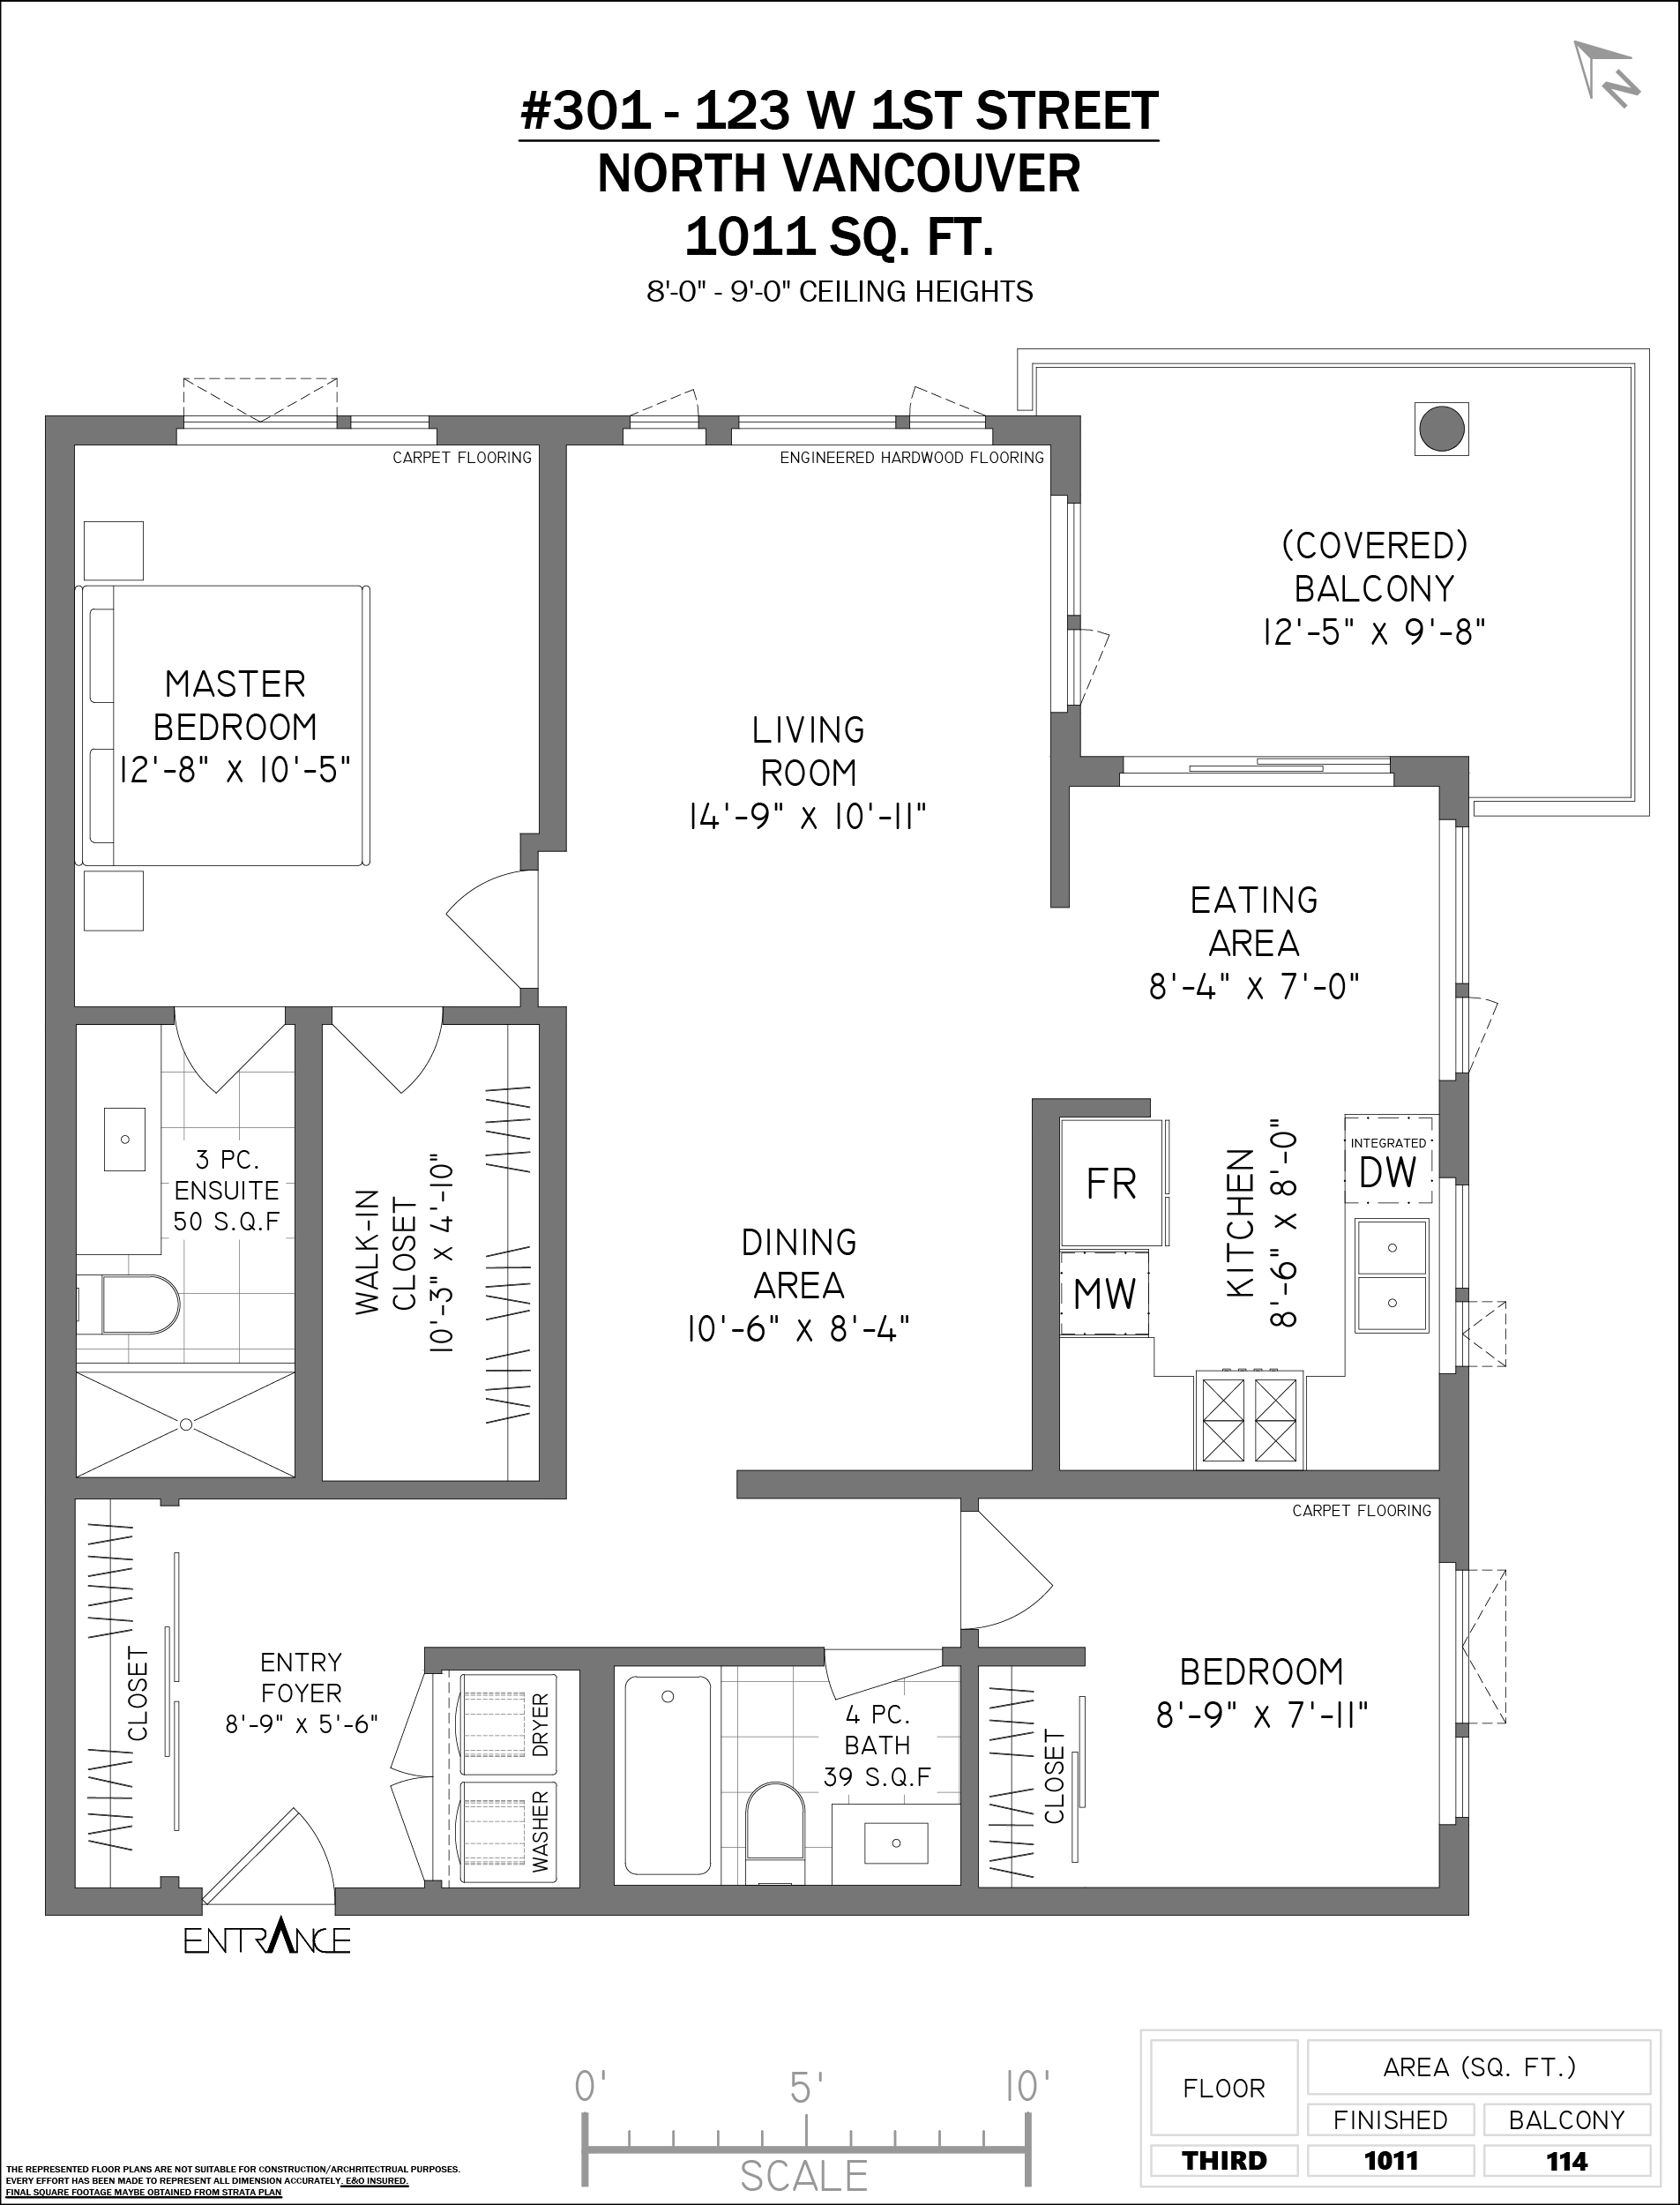 301 123 1st st w North Vancouver, BC - Floor Plan